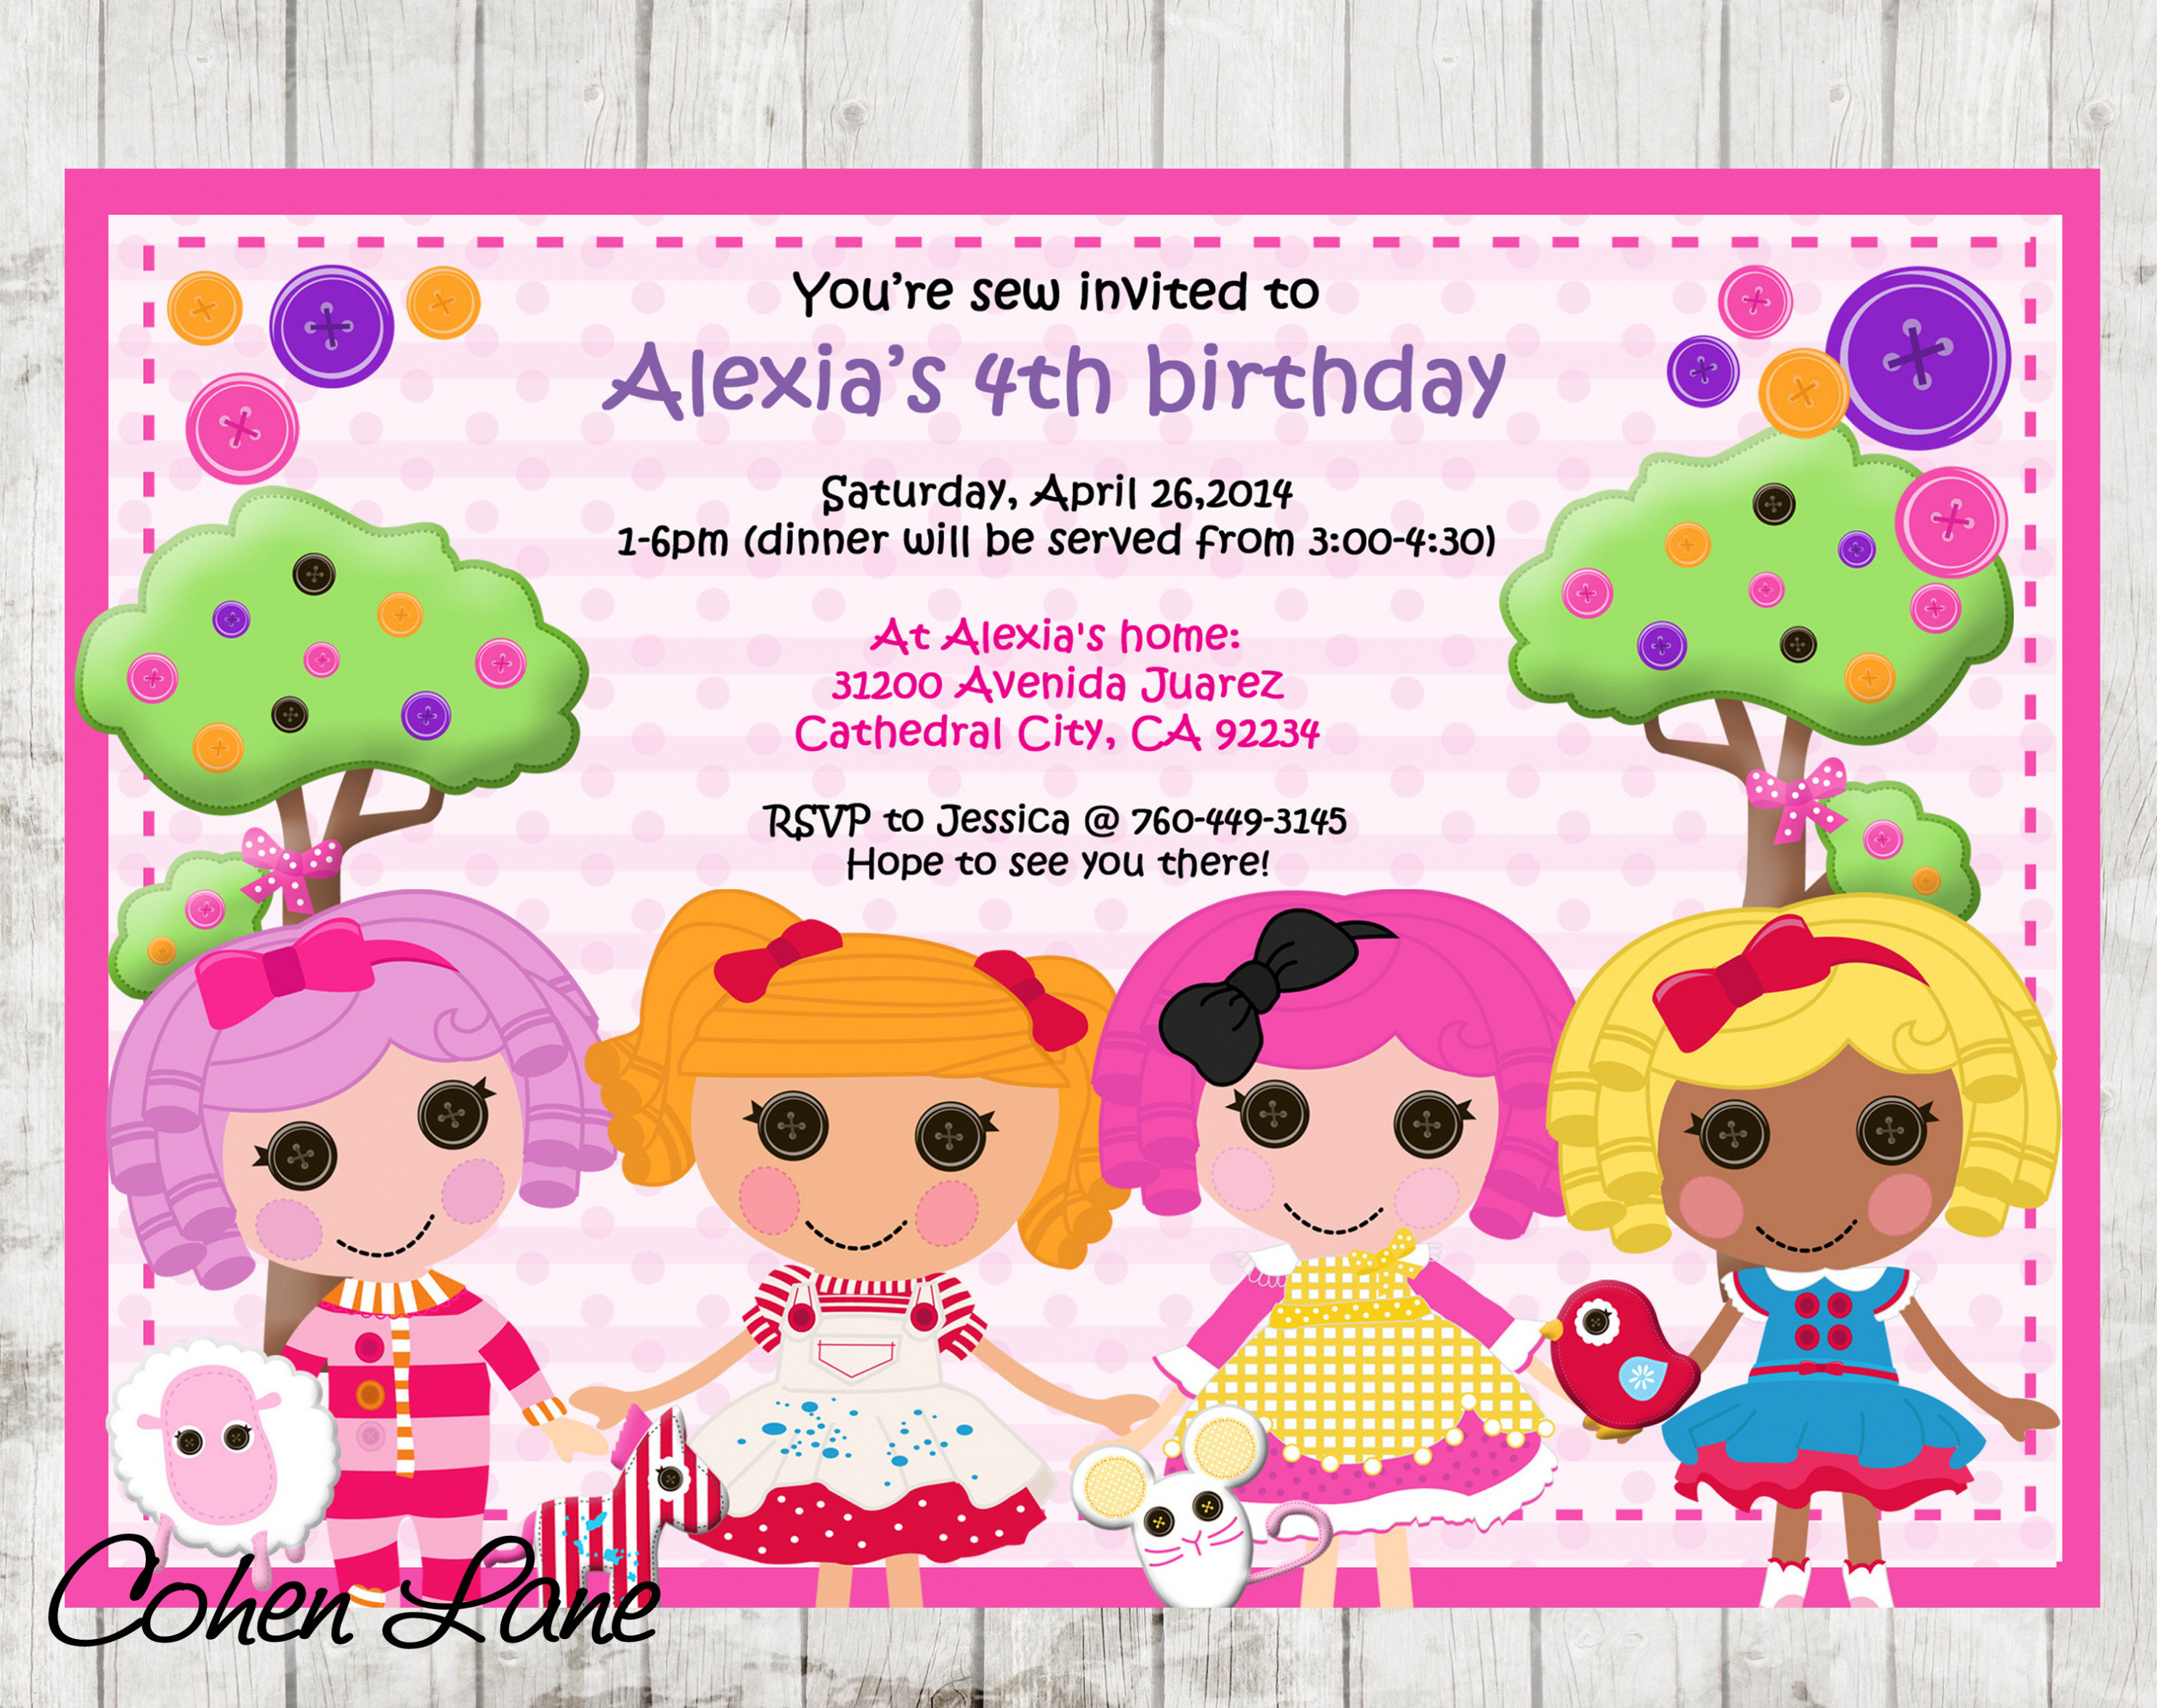 lalaloopsy birthday invitation wording ; wording-for-40th-birthday-party-invitation-birthday-joyously-domestic-lalaloopsy-party-lalaloopsy-birthday